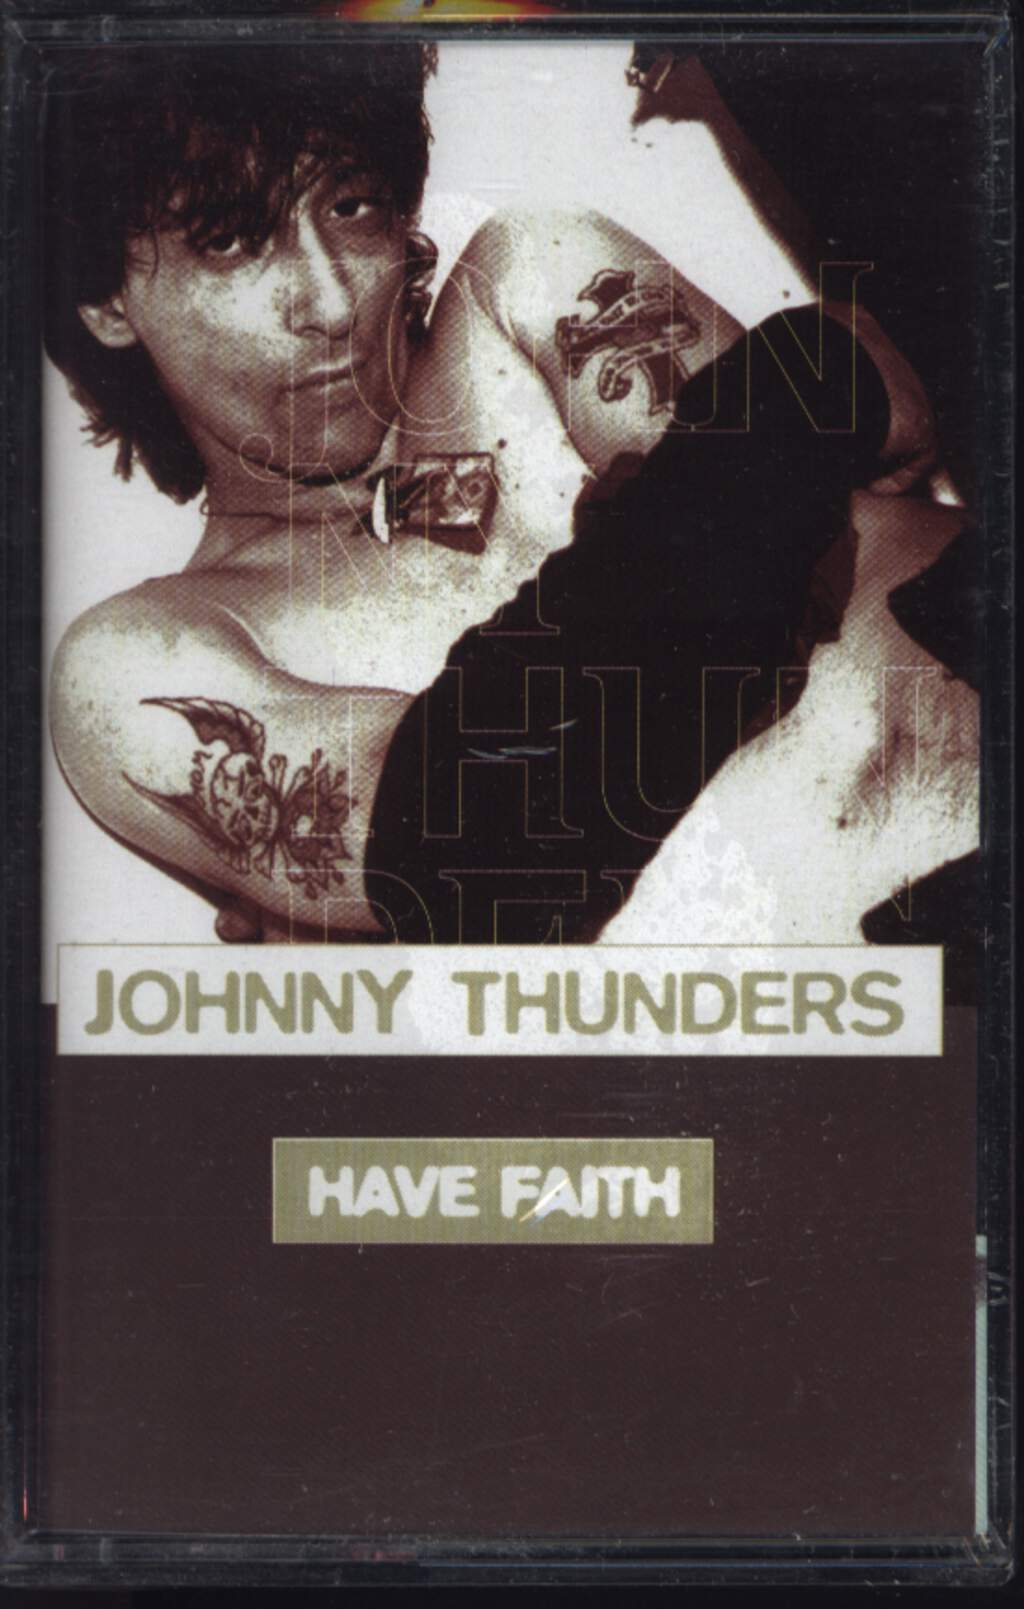 Johnny Thunders: Have Faith, Compact Cassette